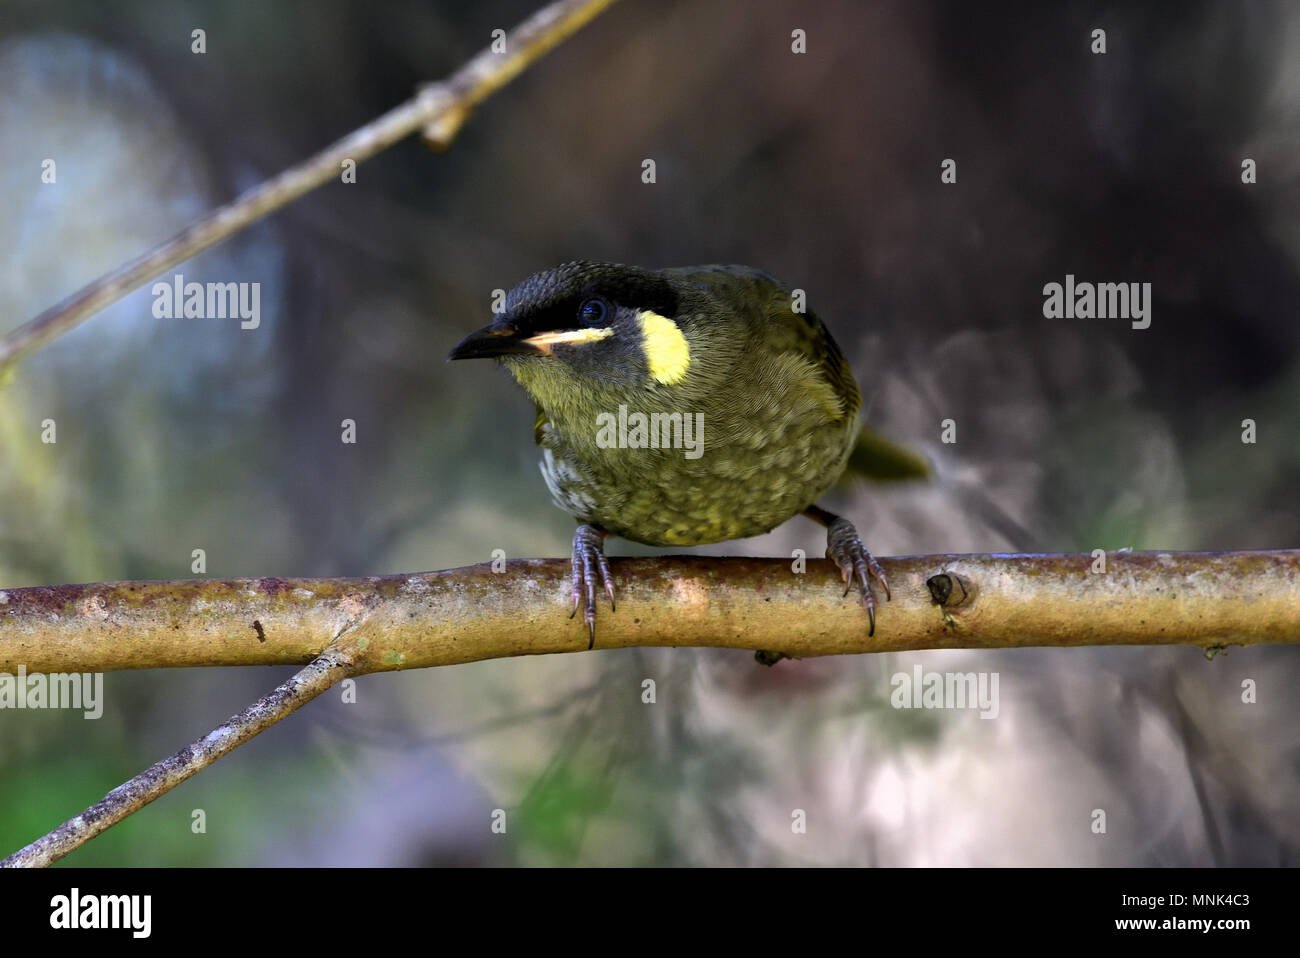 An Australian, Queensland Lewin's Honeyeater, Meliphaga lewinii resting on a Tree branch - Stock Image